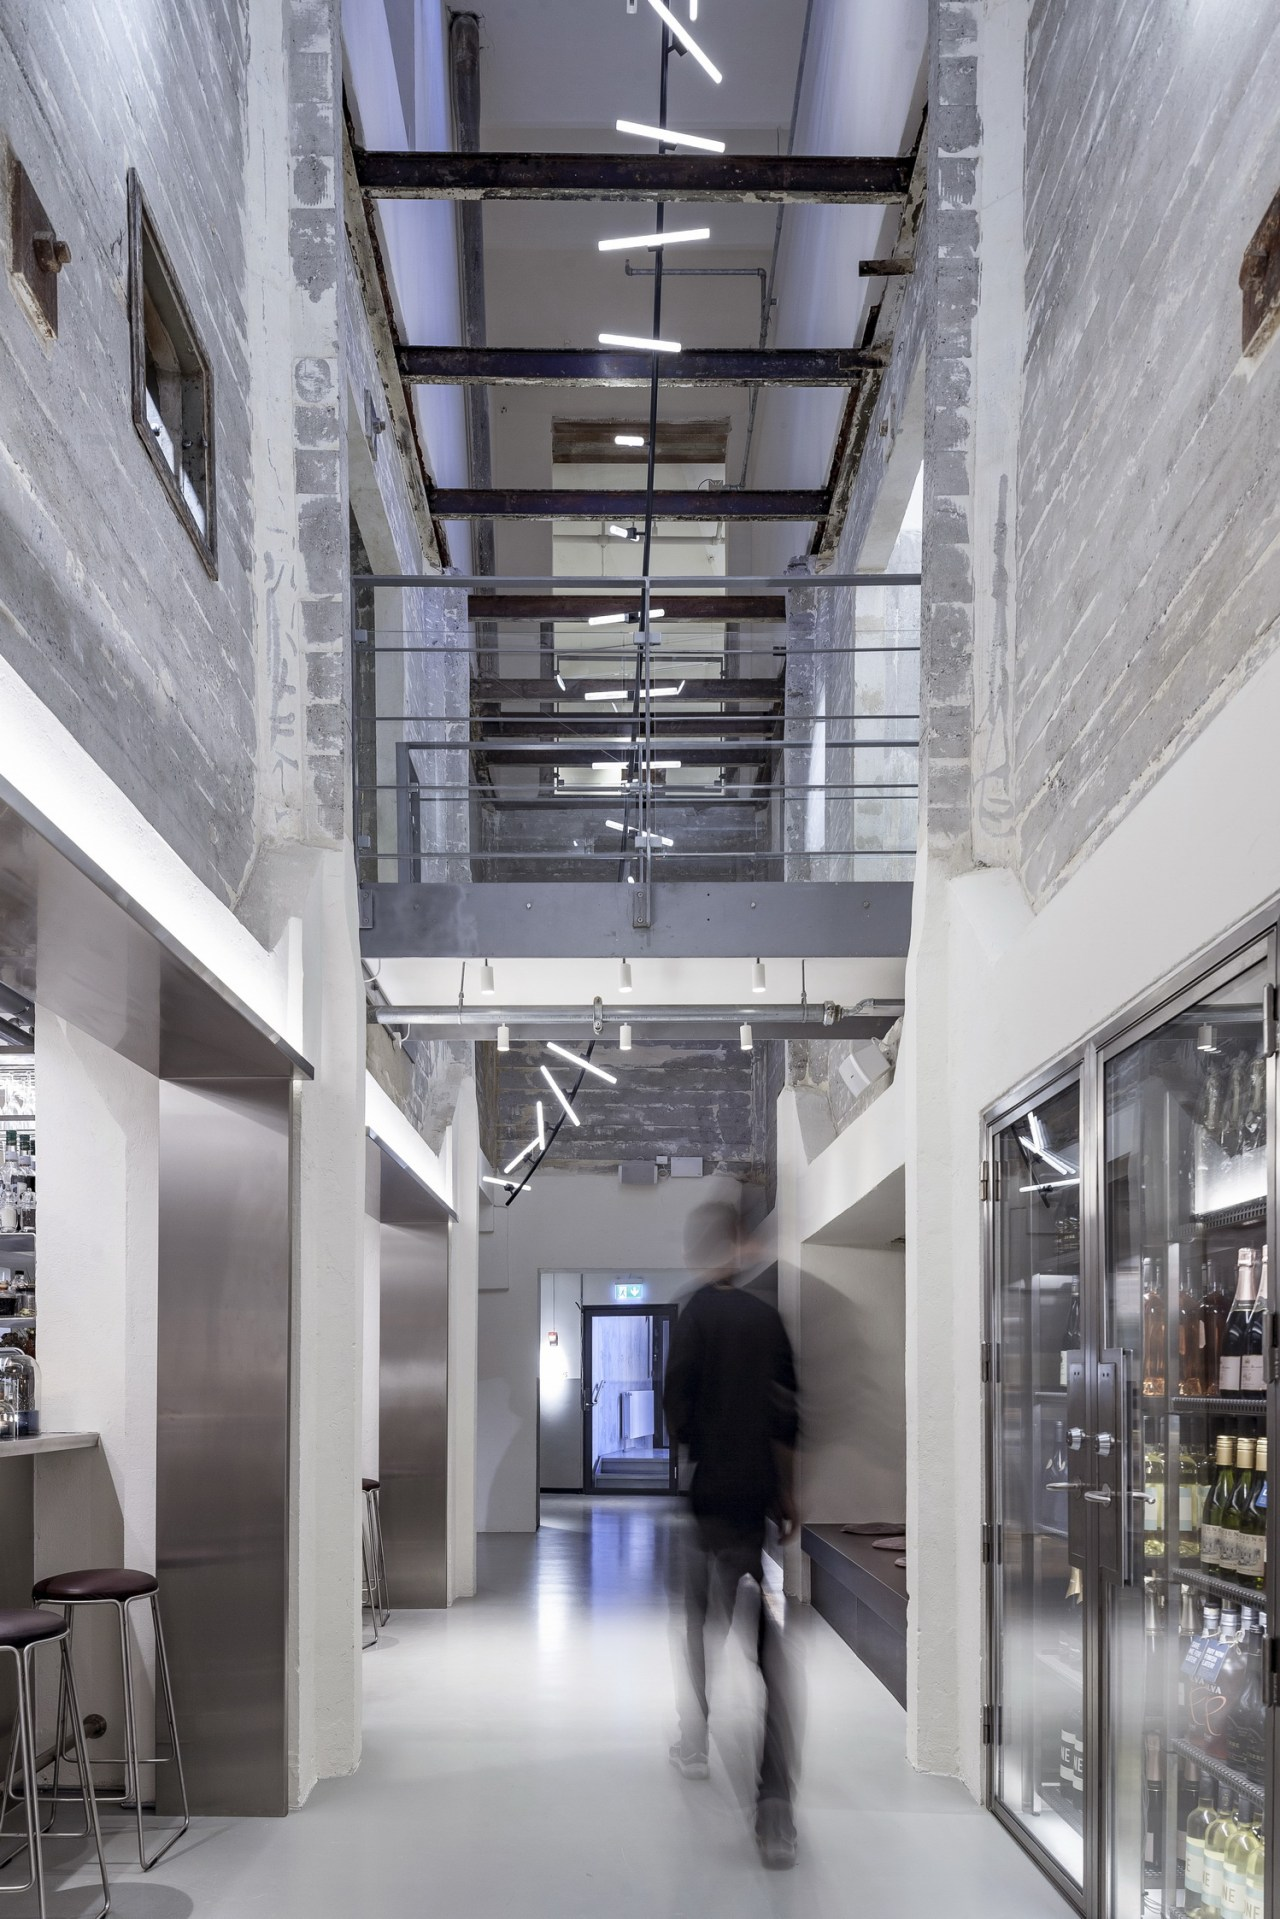 Sandblasted and dust-absorbing coated fair-faced concrete is on architecture, building, ceiling, commercial building, daylighting, design, glass, interior design, lobby, metropolitan area, mixed-use, gray